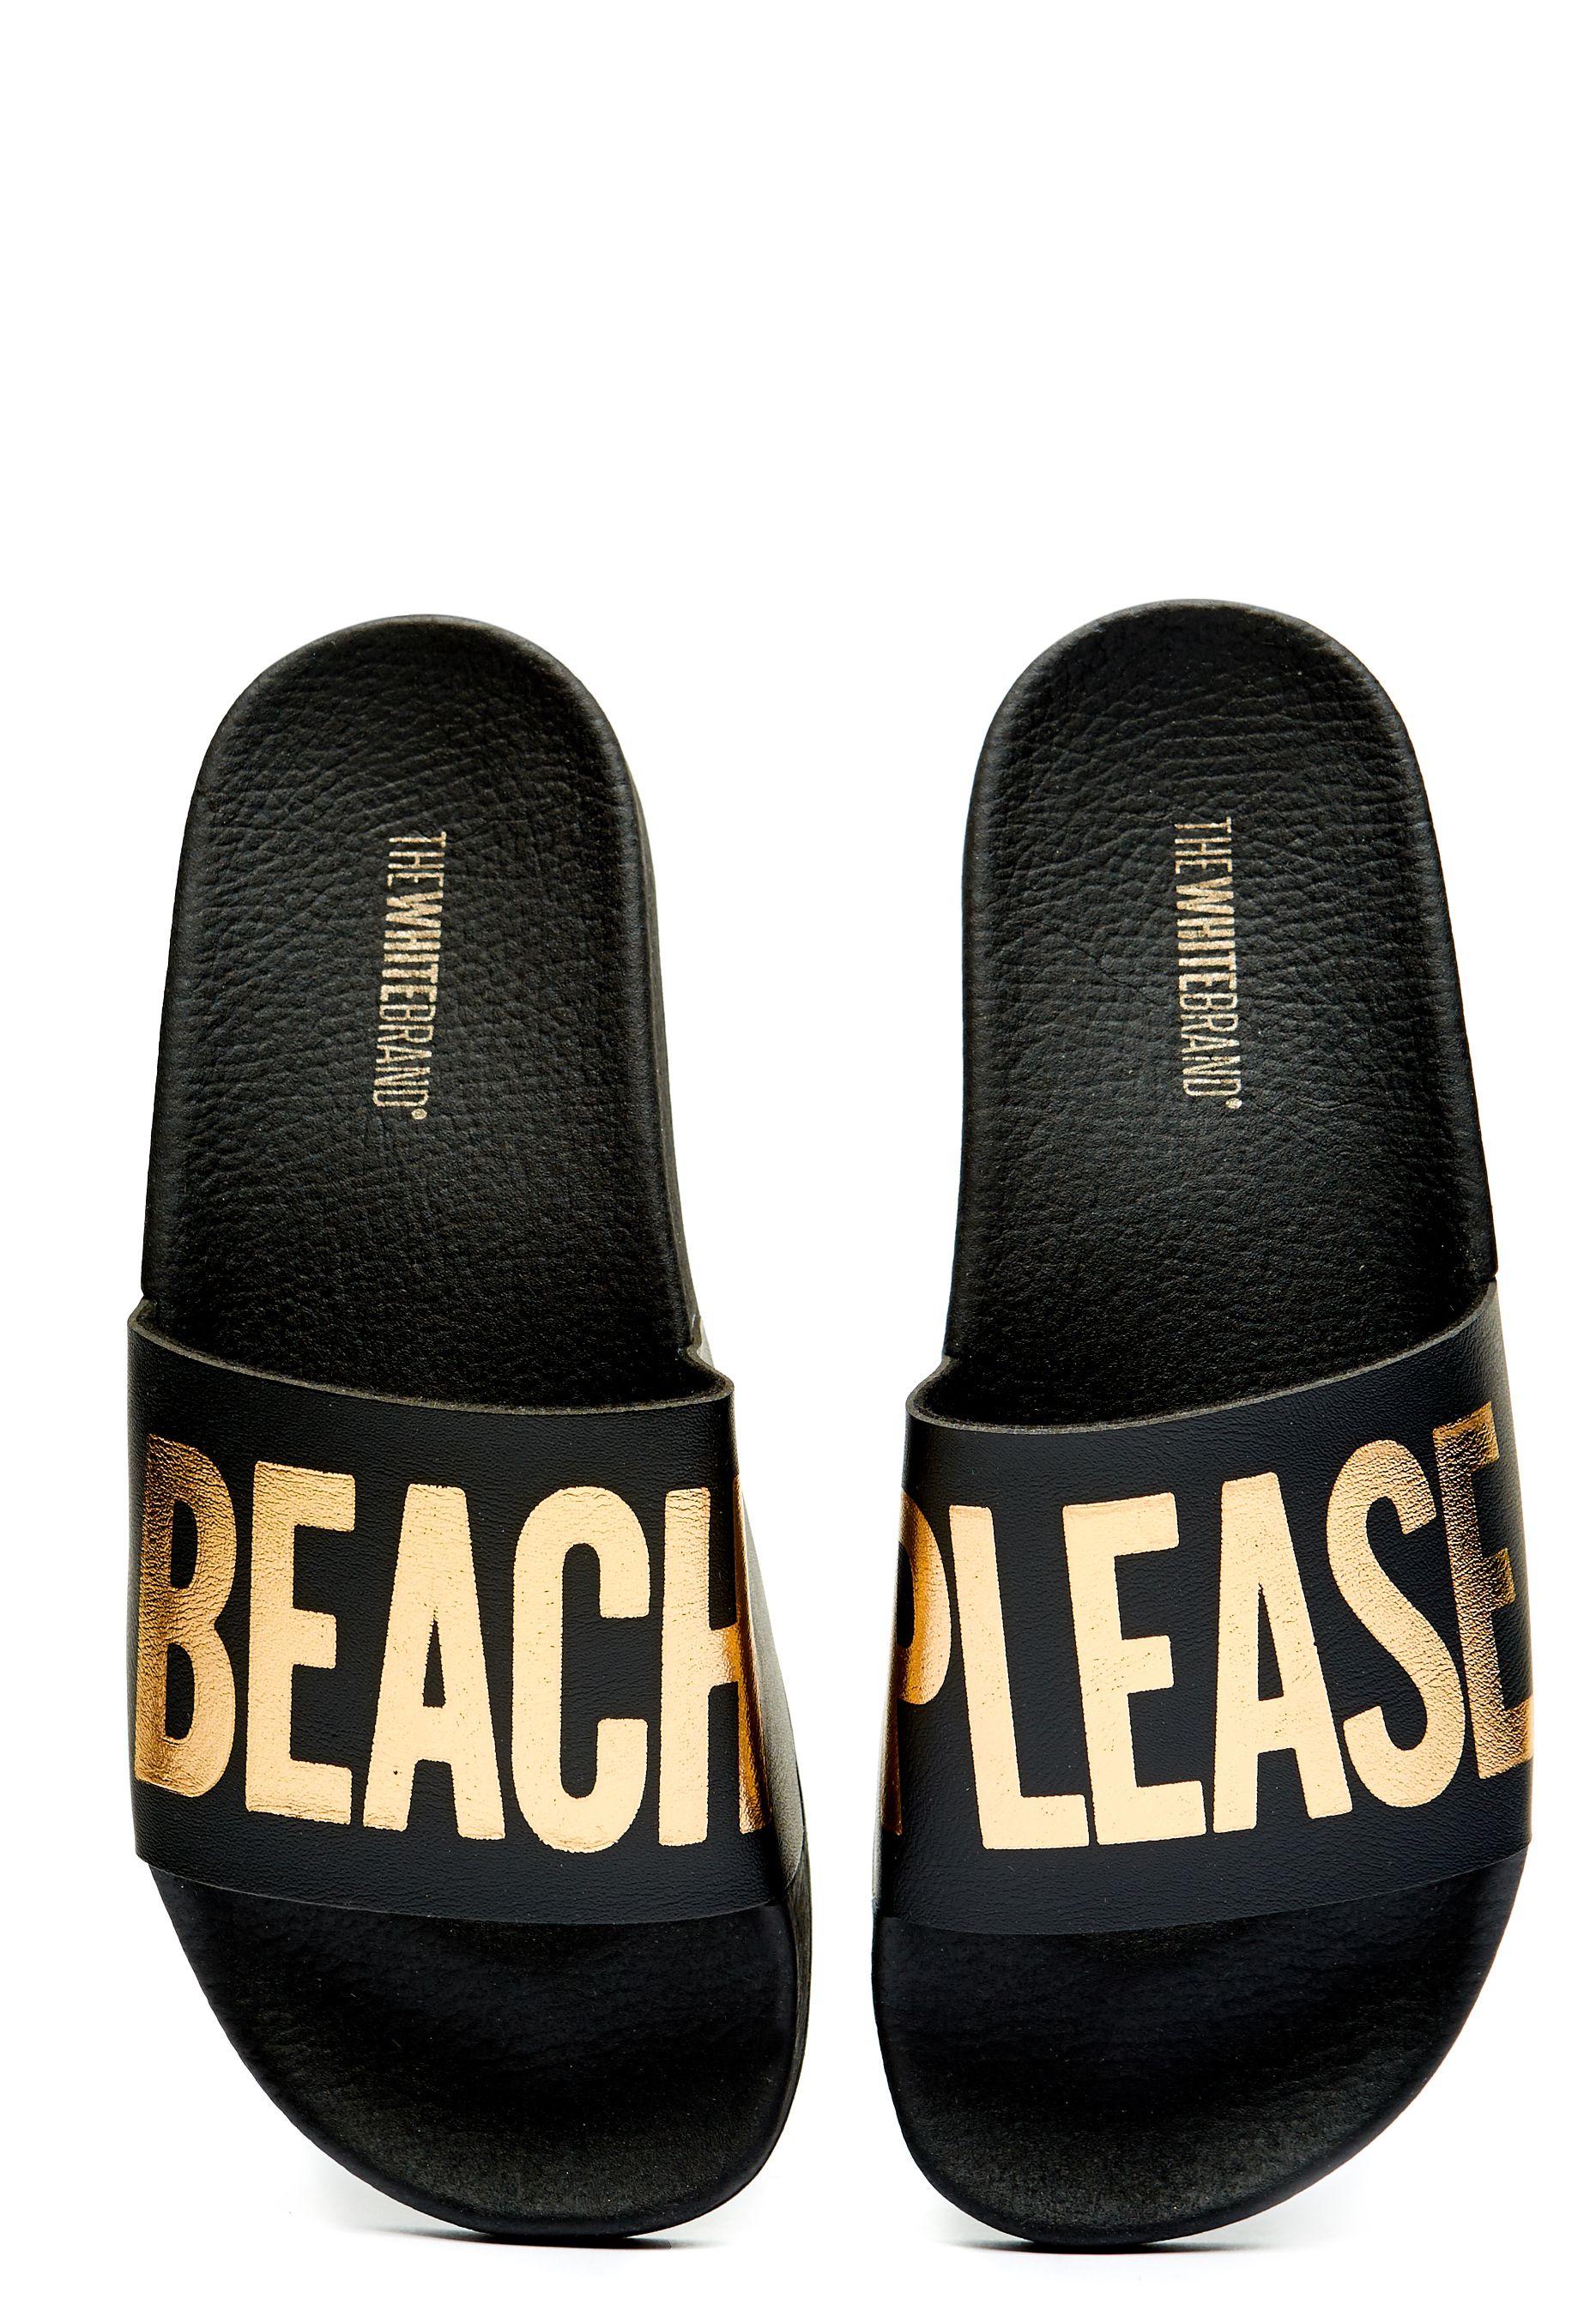 9ca274cde2a0f The White Brand Beach Please Slippers Black - Bubbleroom